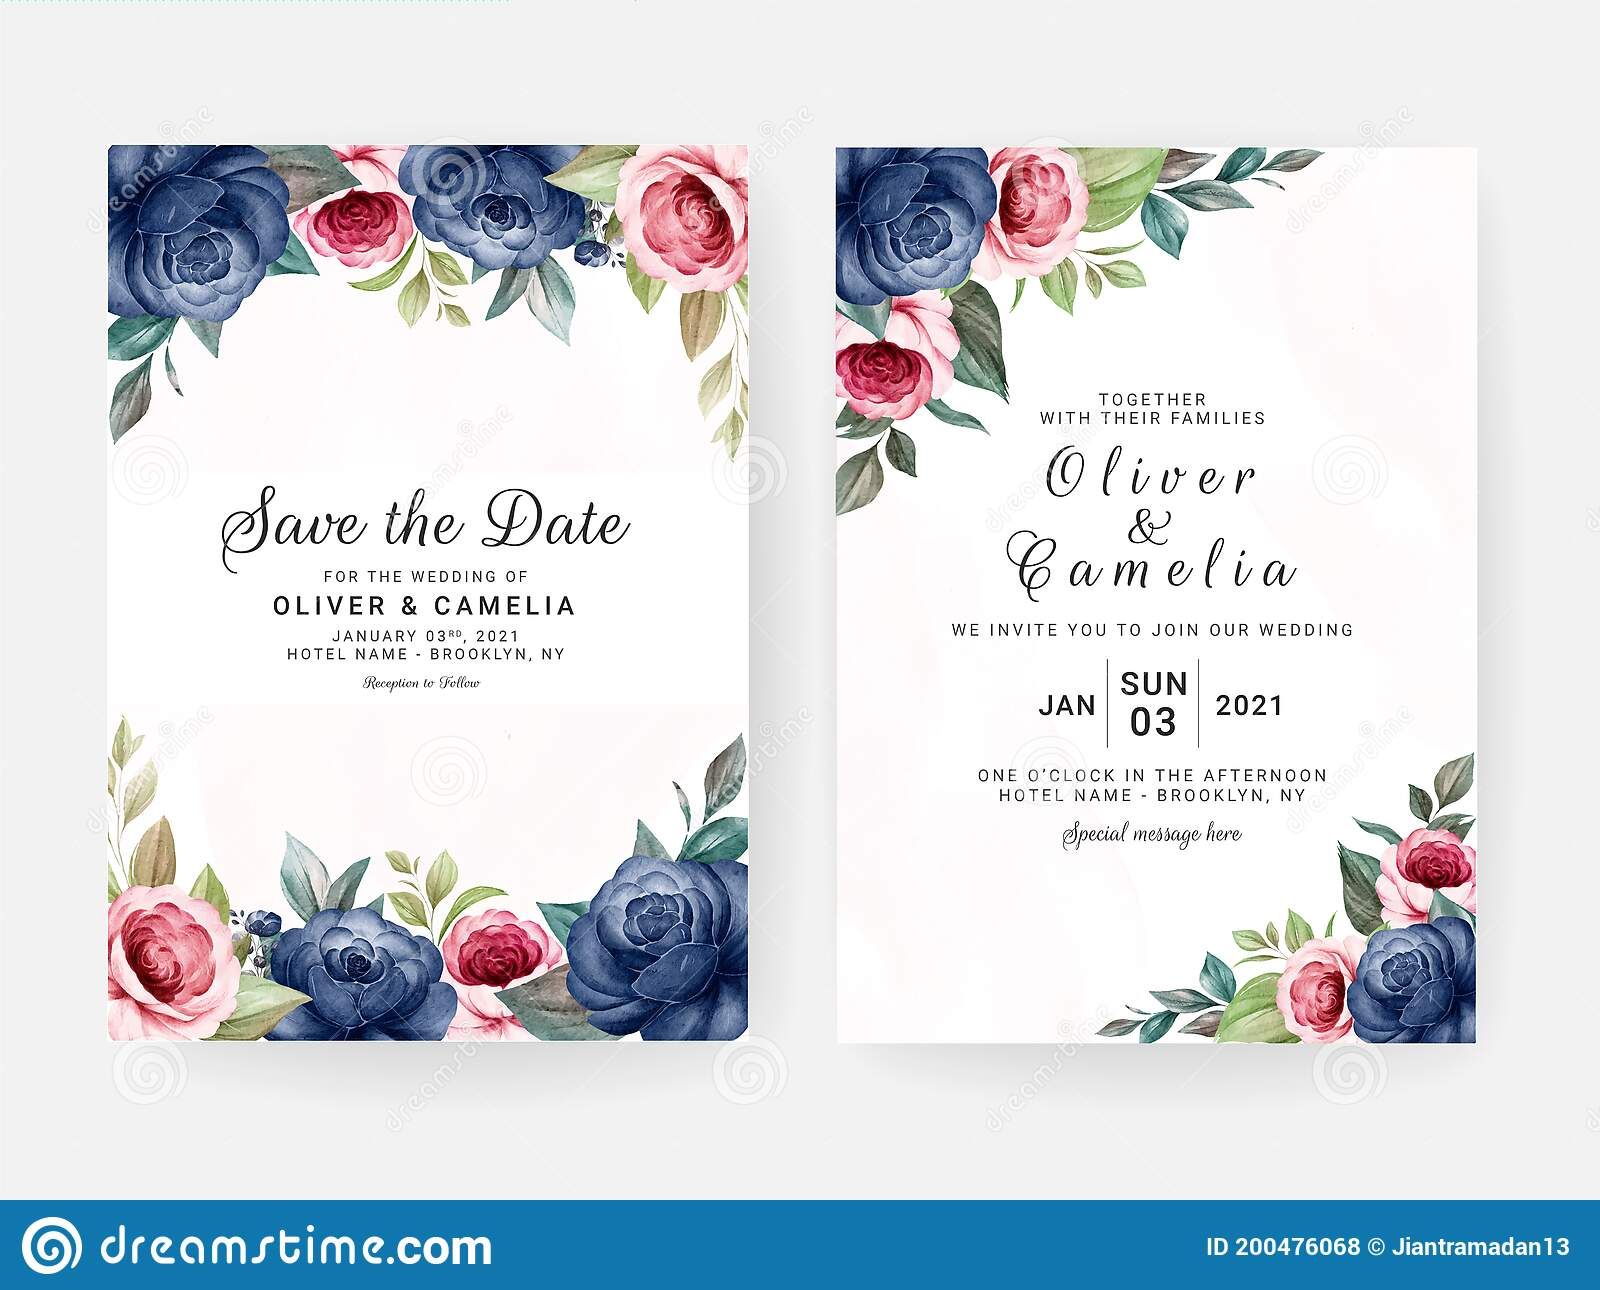 Floral Wedding Invitation Template Set With Blue And Brown Roses Flowers  And Leaves Decoration. Botanic Card Design Concept Stock Vector -  Illustration of abstract, elegant: 200476068